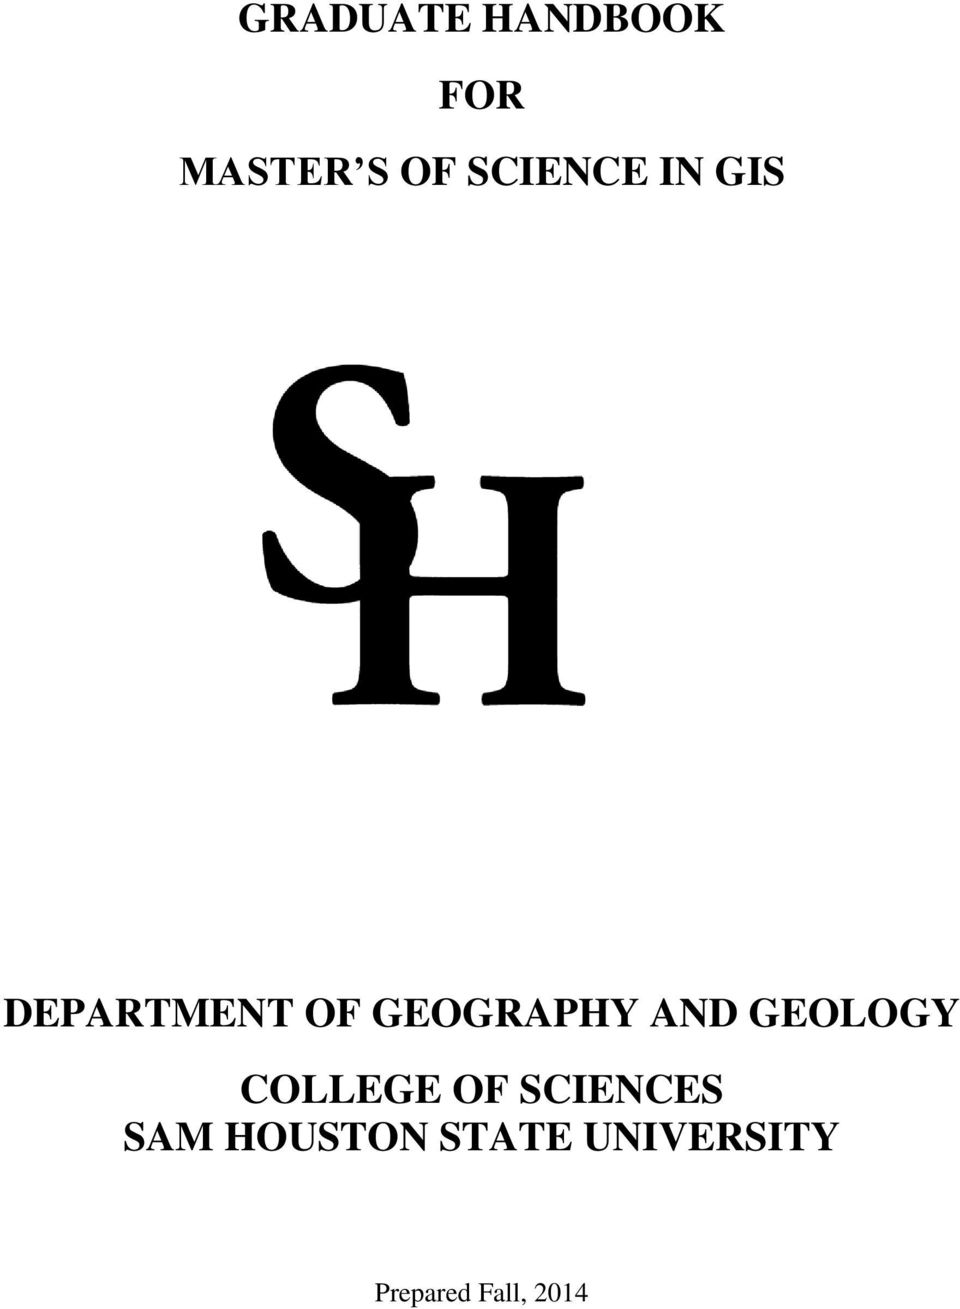 GRADUATE HANDBOOK FOR MASTER S OF SCIENCE IN GIS DEPARTMENT